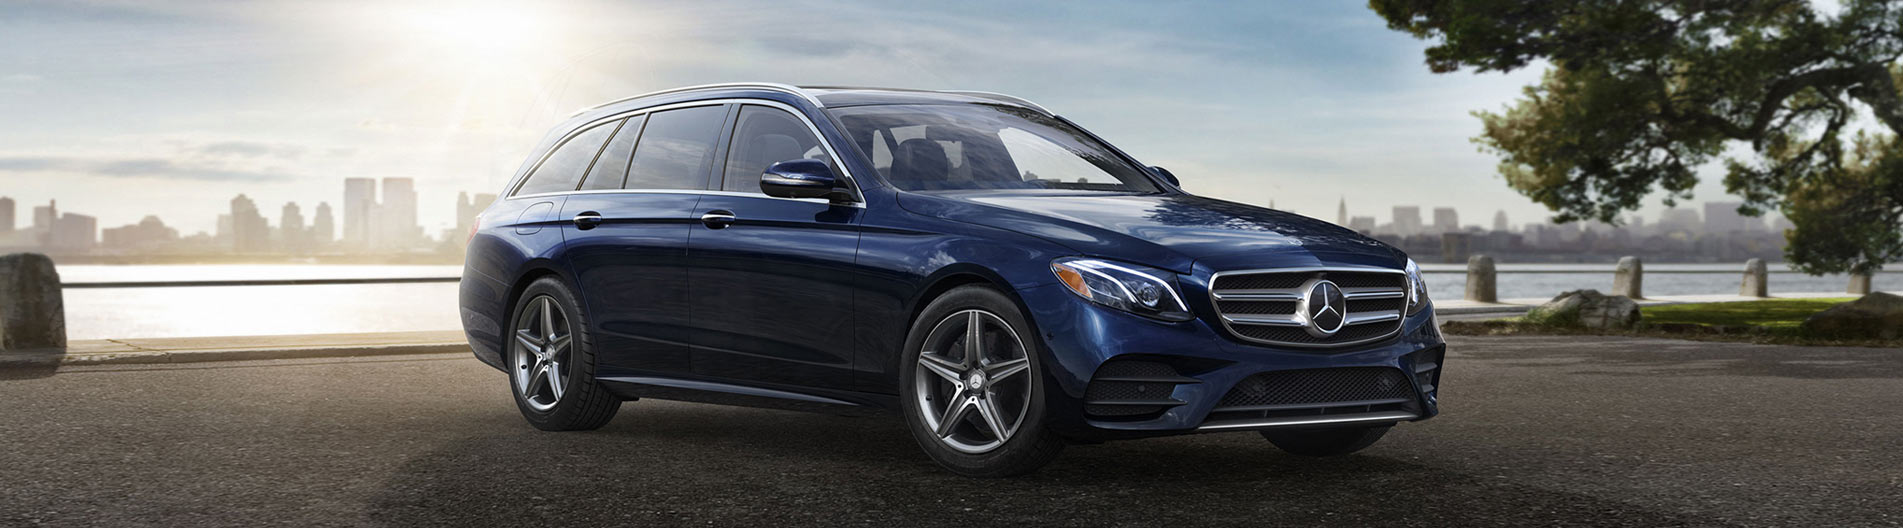 Used car dealer in farmington manchester waterbury ct driving used cars for sale in farmington driving image imports llc farmington ct sciox Images